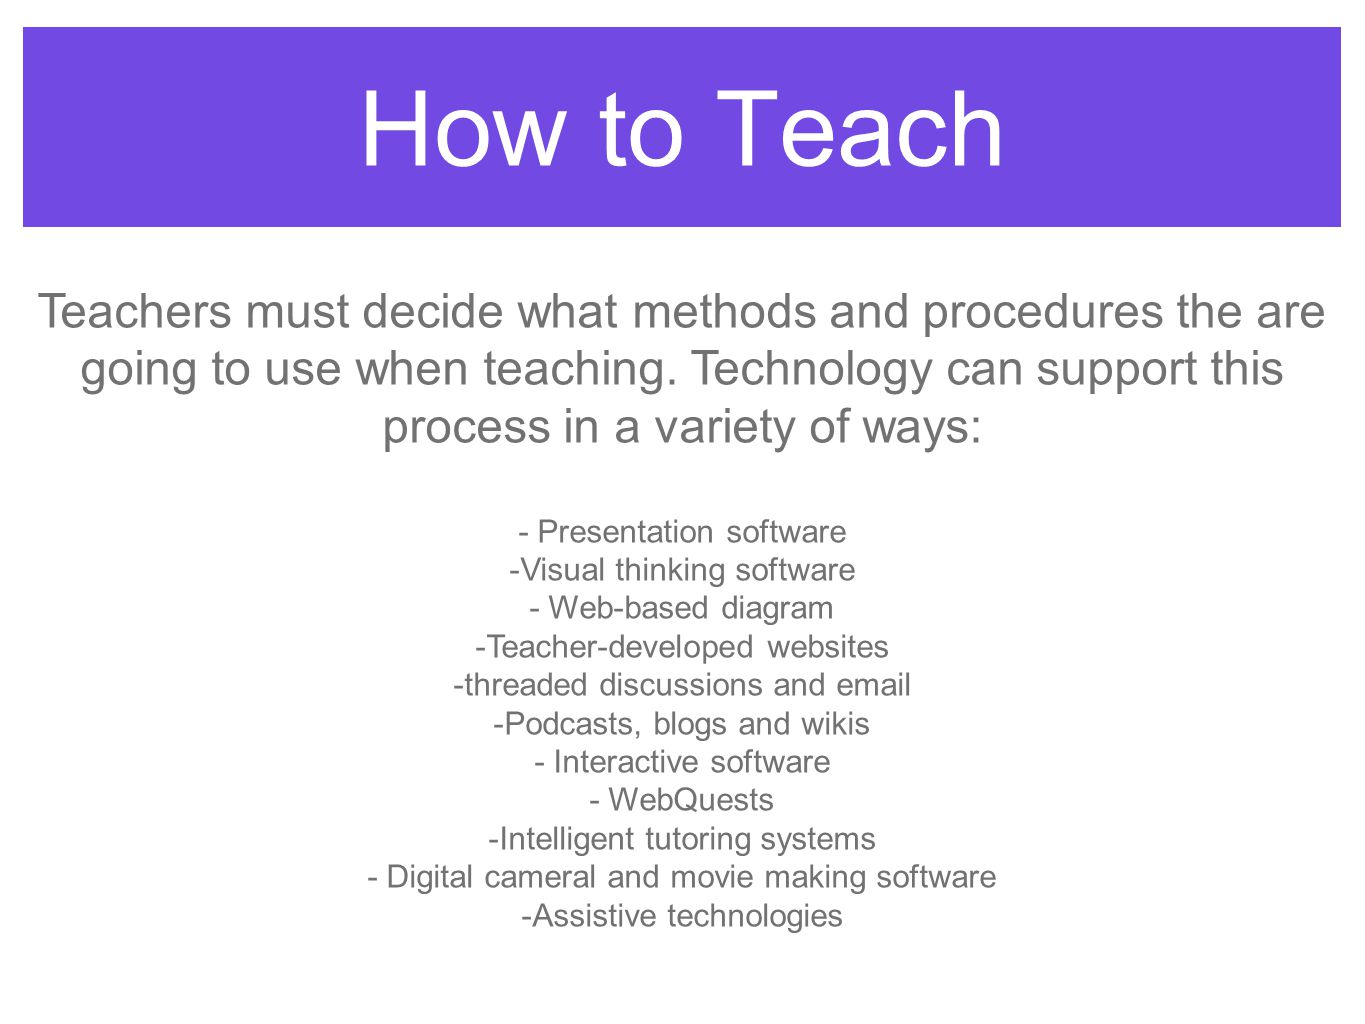 How to Teach Teachers must decide what methods and procedures the are going to use when teaching. Technology can support this process in a variety of